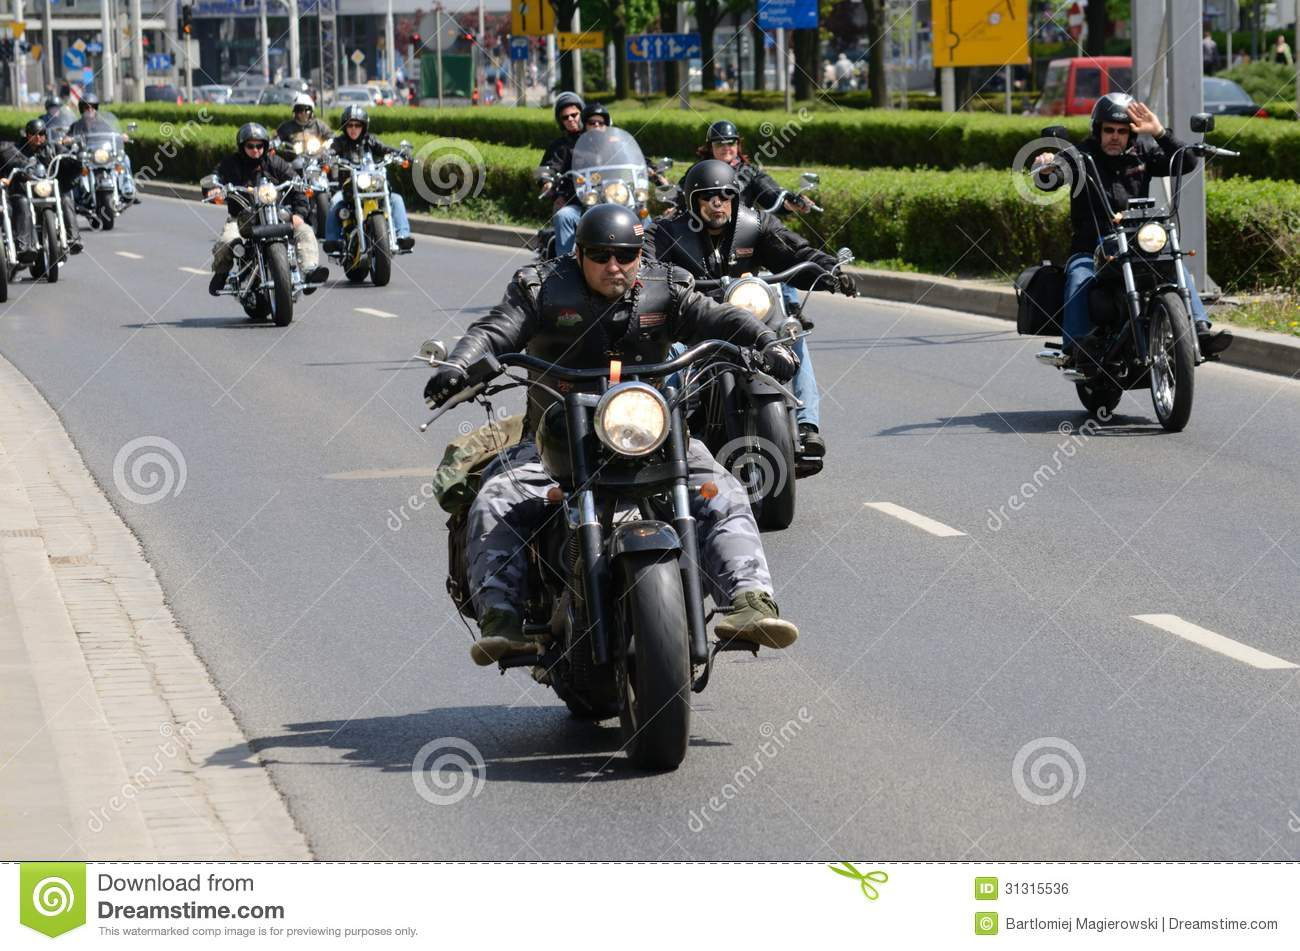 harley davidson international management Harley-davidson, milwaukee, wi 77m likes all for freedom, freedom for all.